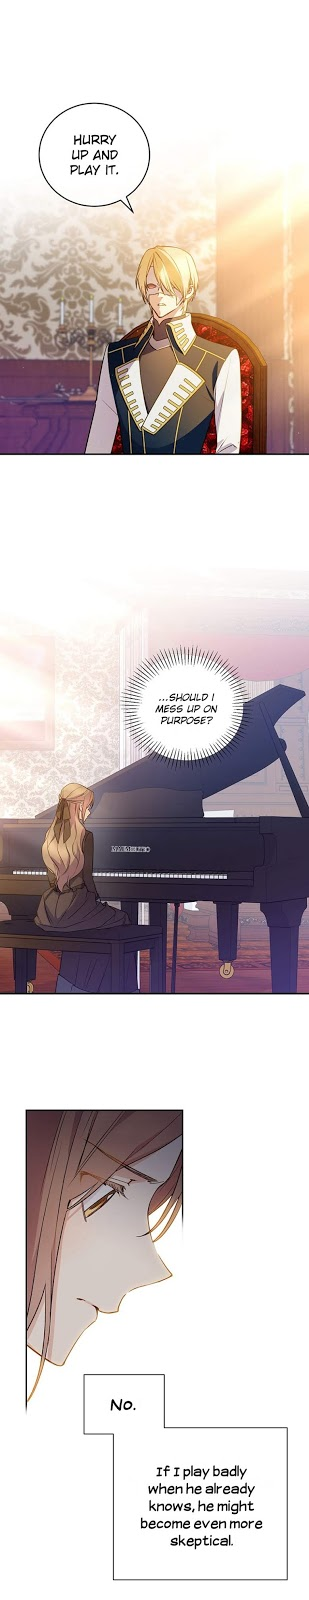 ACapableMaid- Chapter 27